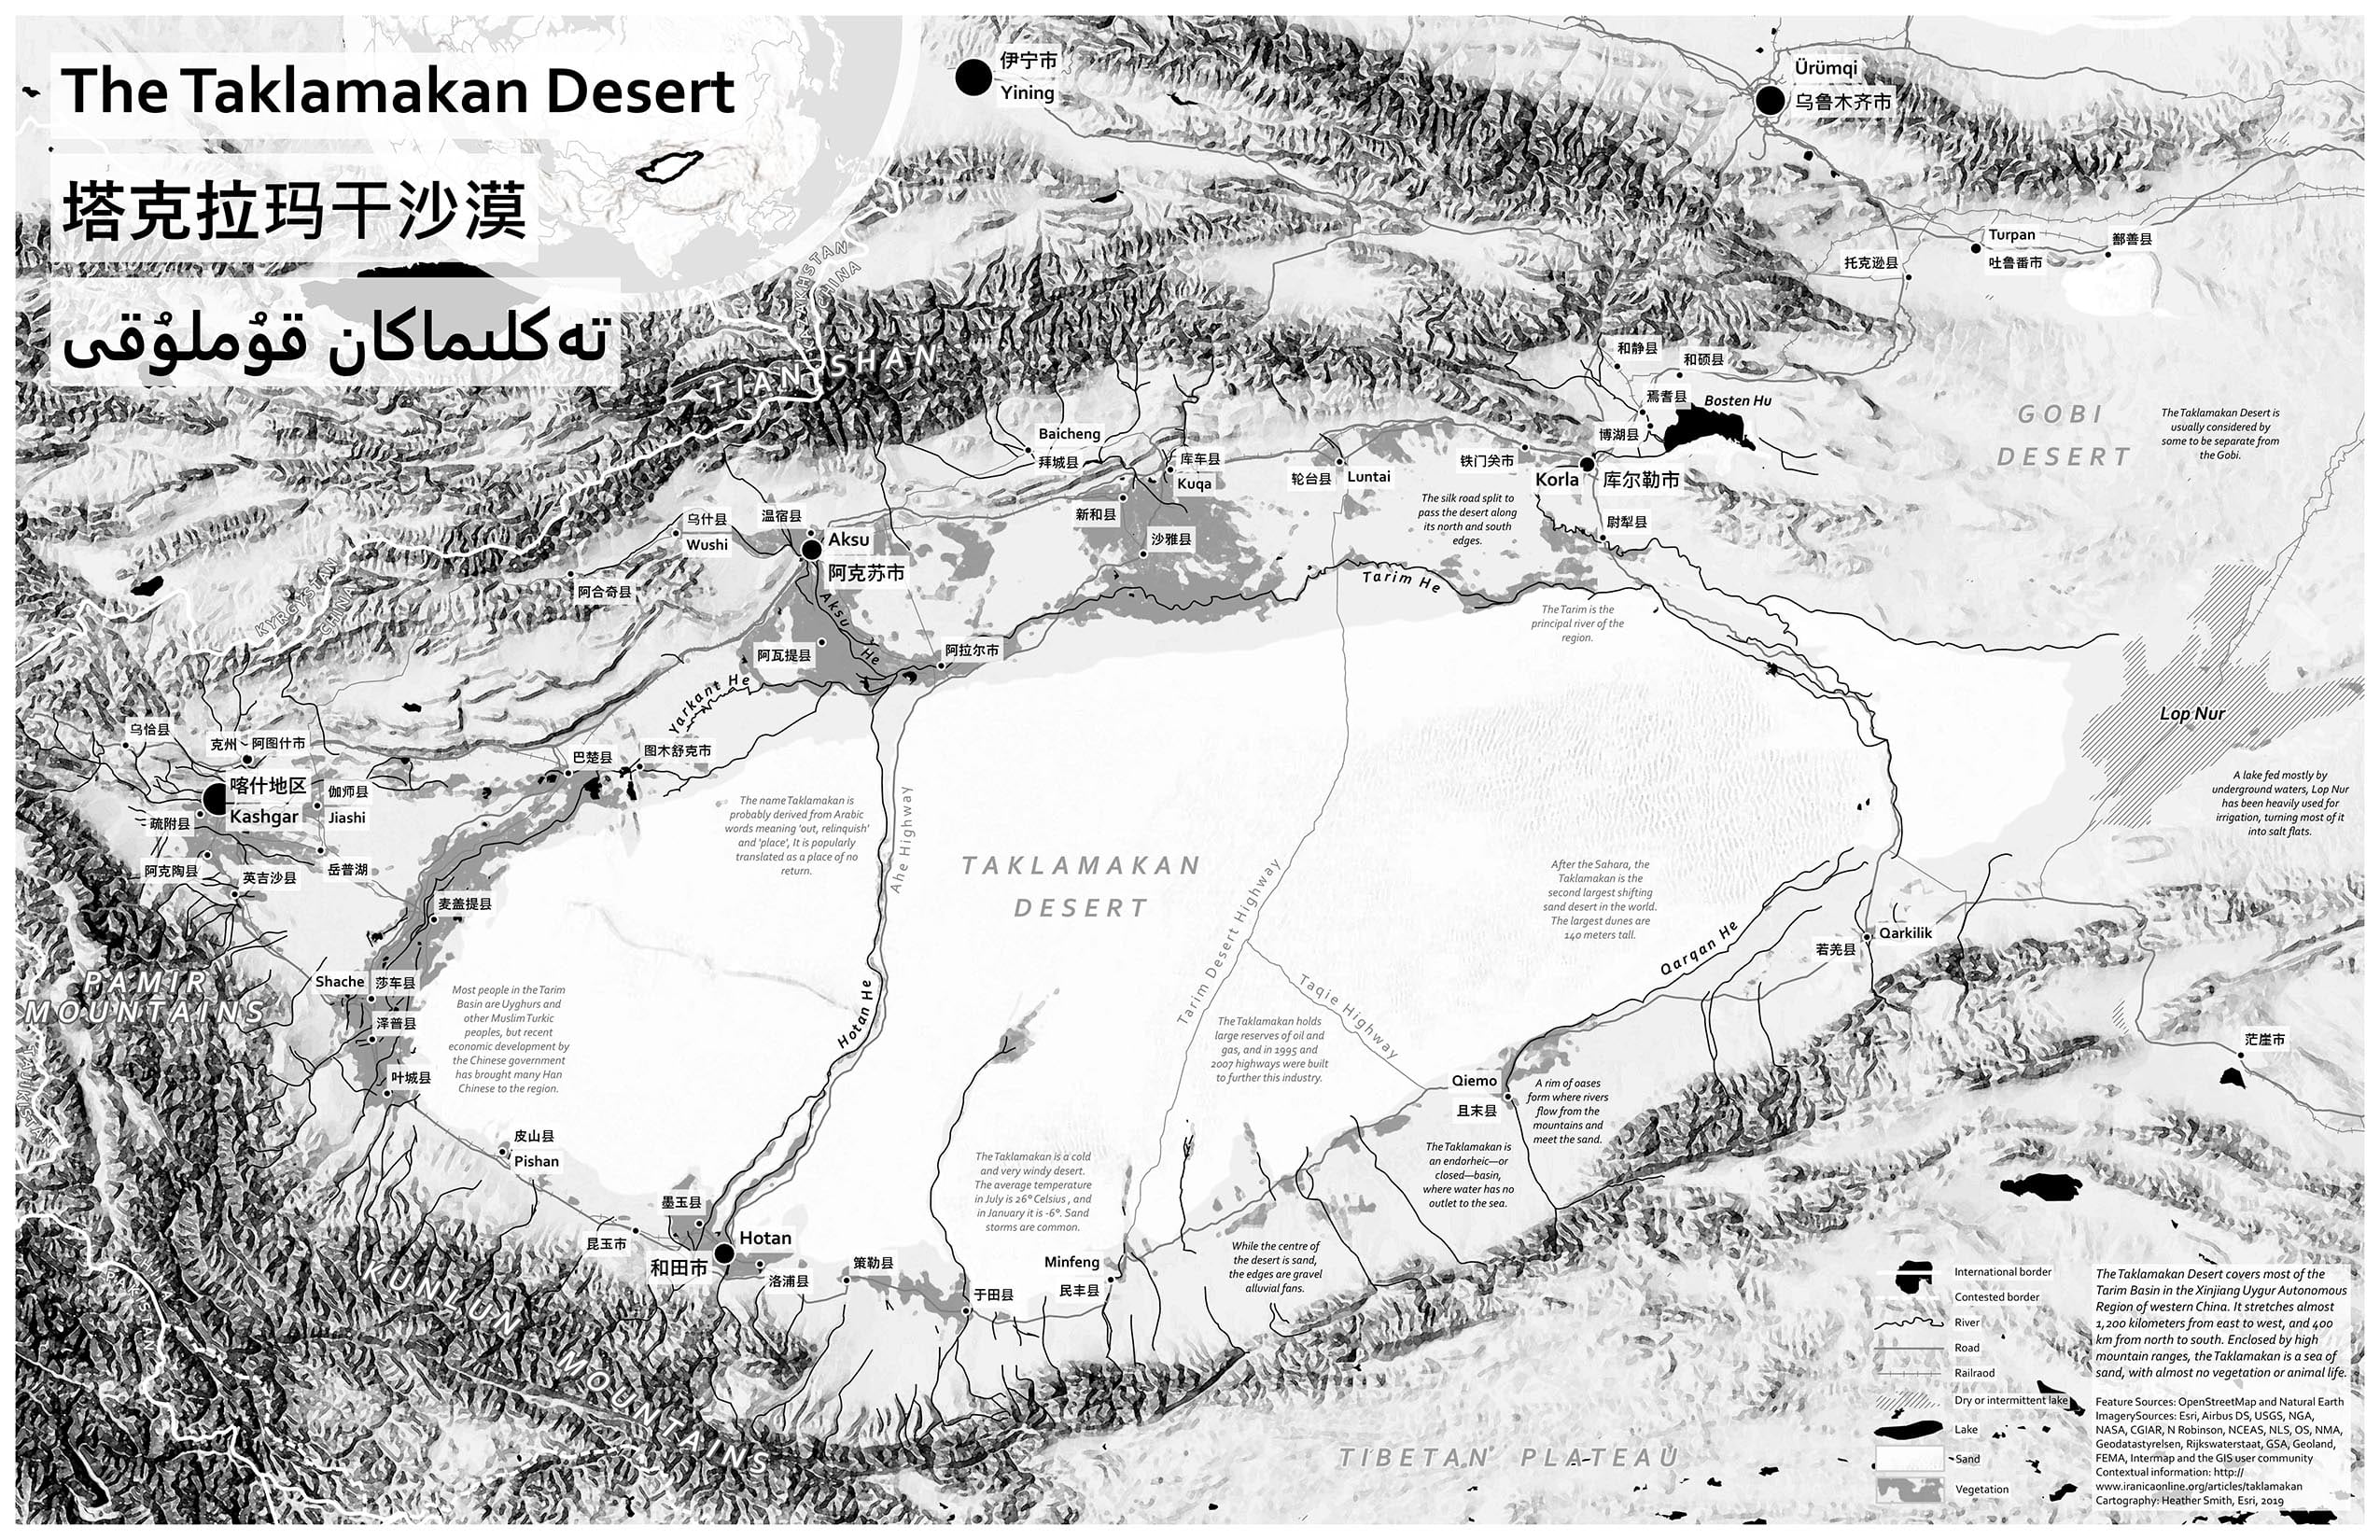 Final map of the Taklamakan Desert